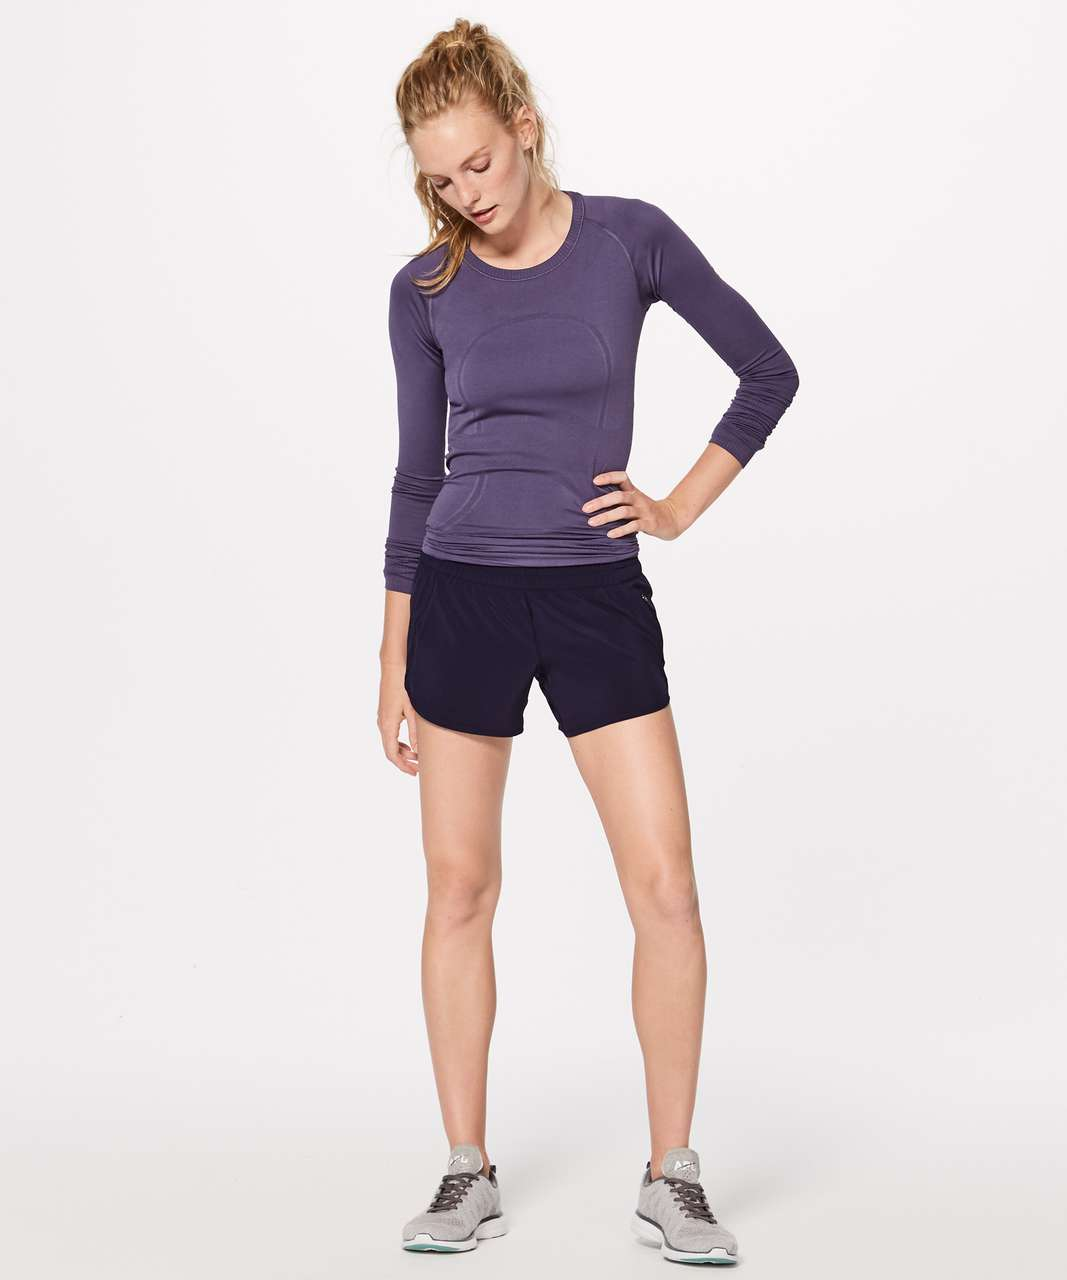 "Lululemon Tracker Short V (4"") - Aeon"